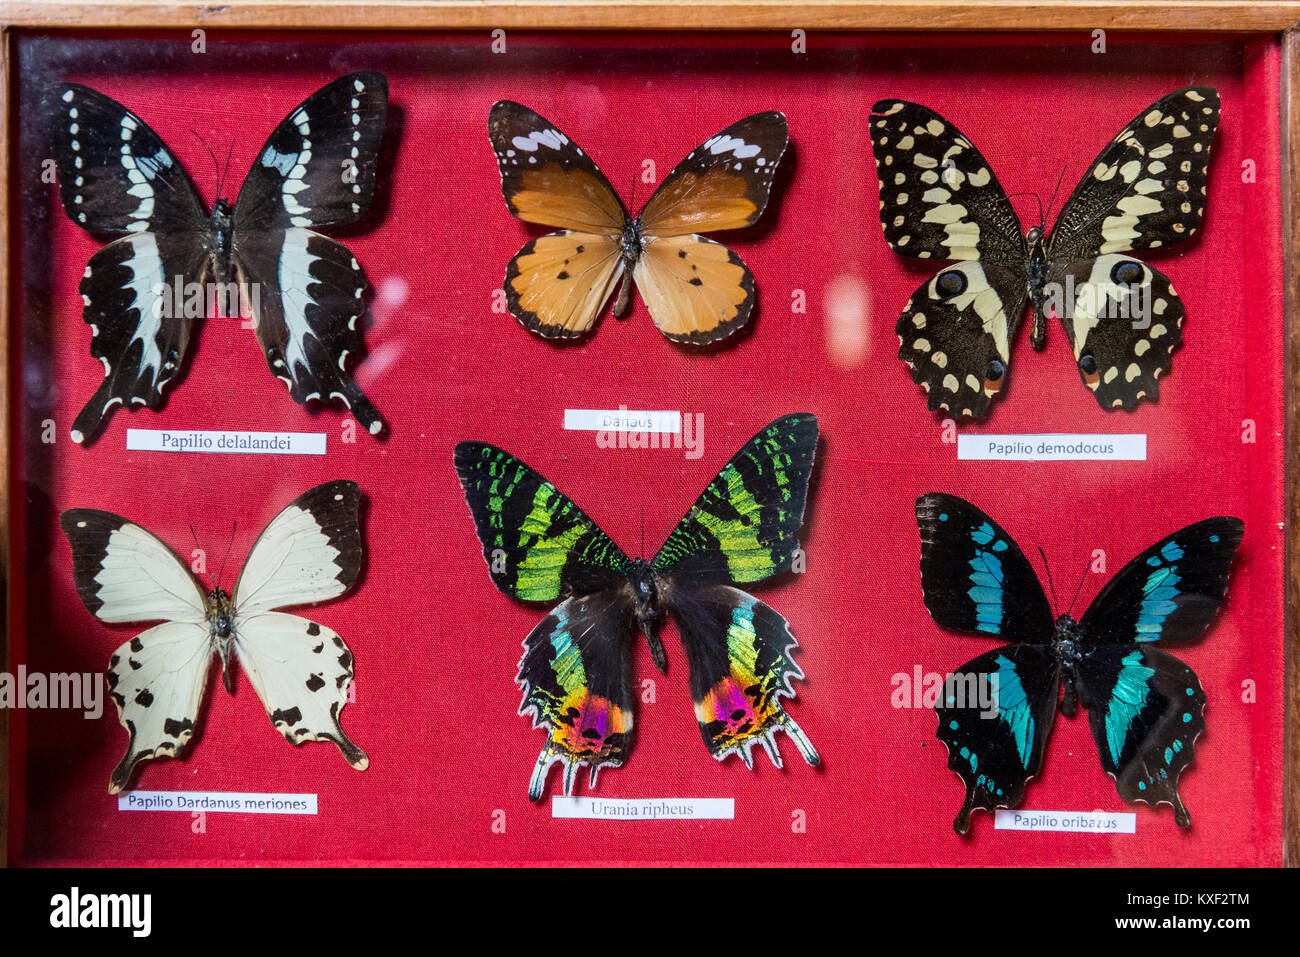 Butterfly Collection Display Stockfotos & Butterfly Collection ...